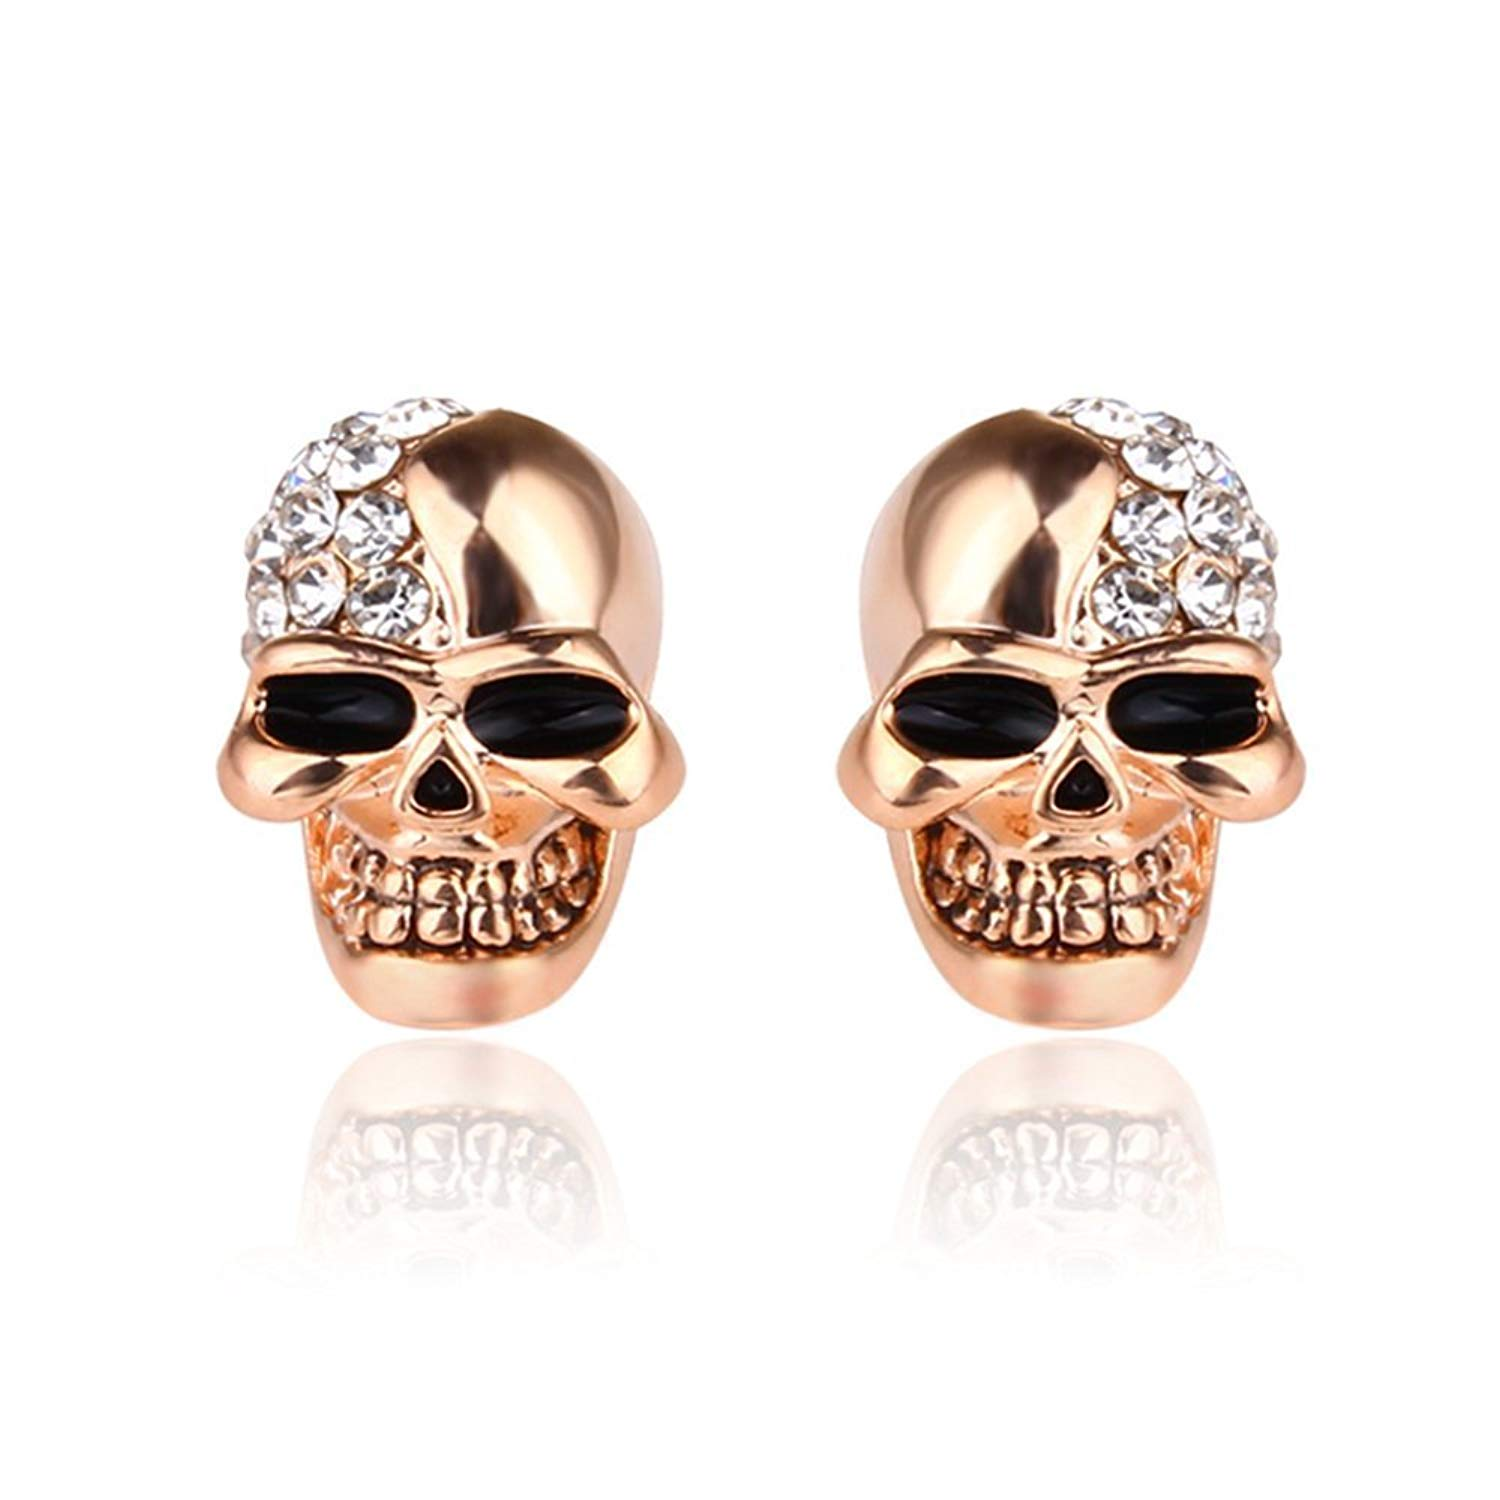 914326b03 Get Quotations · Pair of Unisex Classic Skull Ear Stud Earrings, Punk Rock  Style Skull Earrings Ear Stud